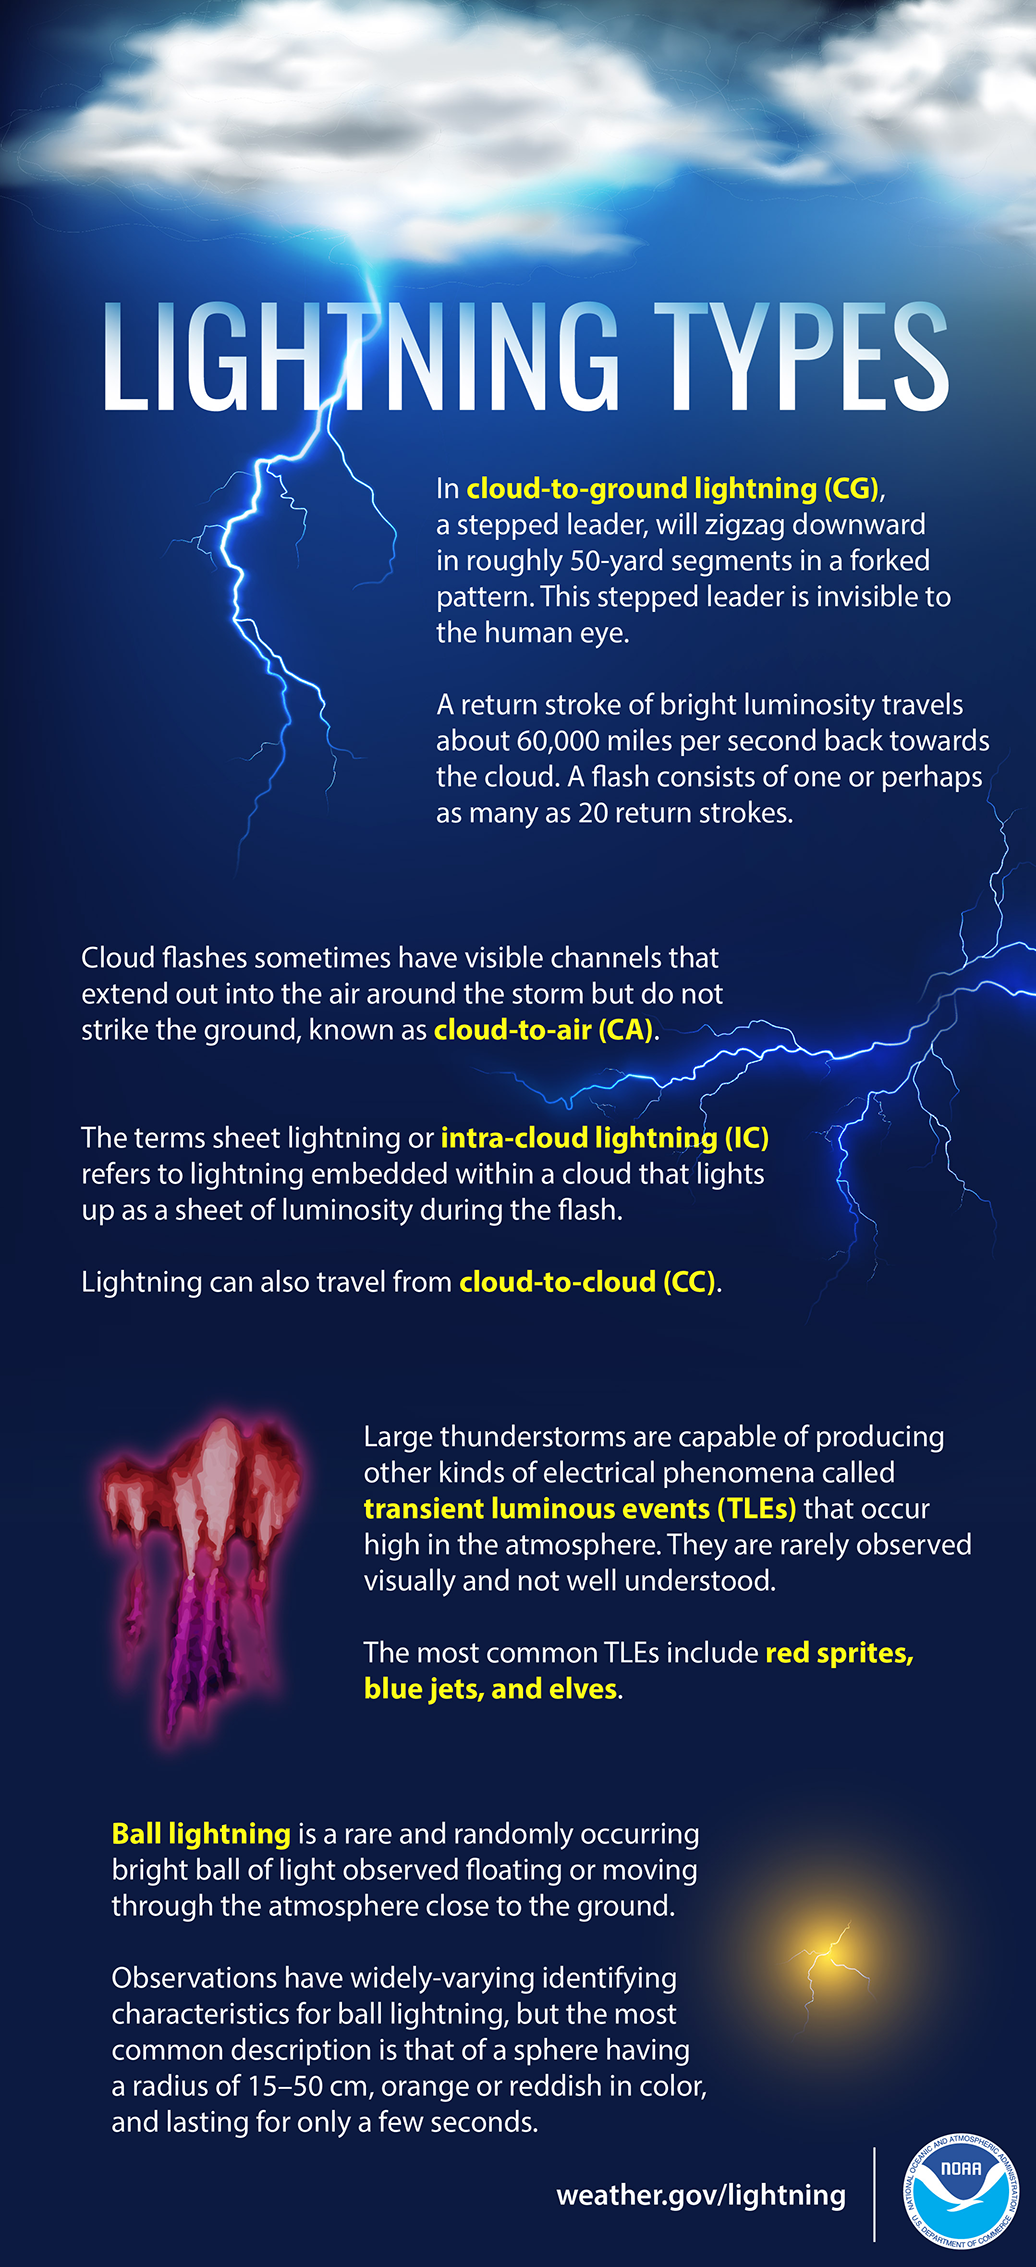 Lightning Types: